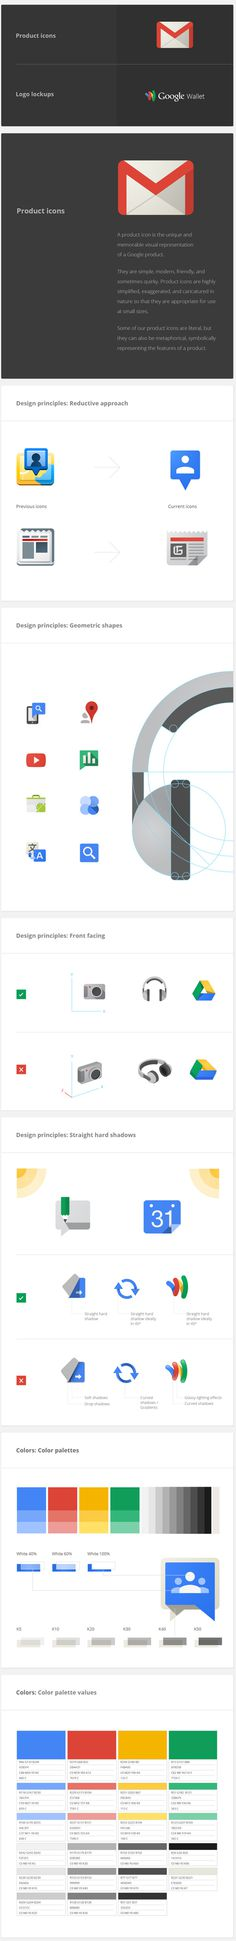 Google Visual Assets Guidelines Part 1 on Behance #google